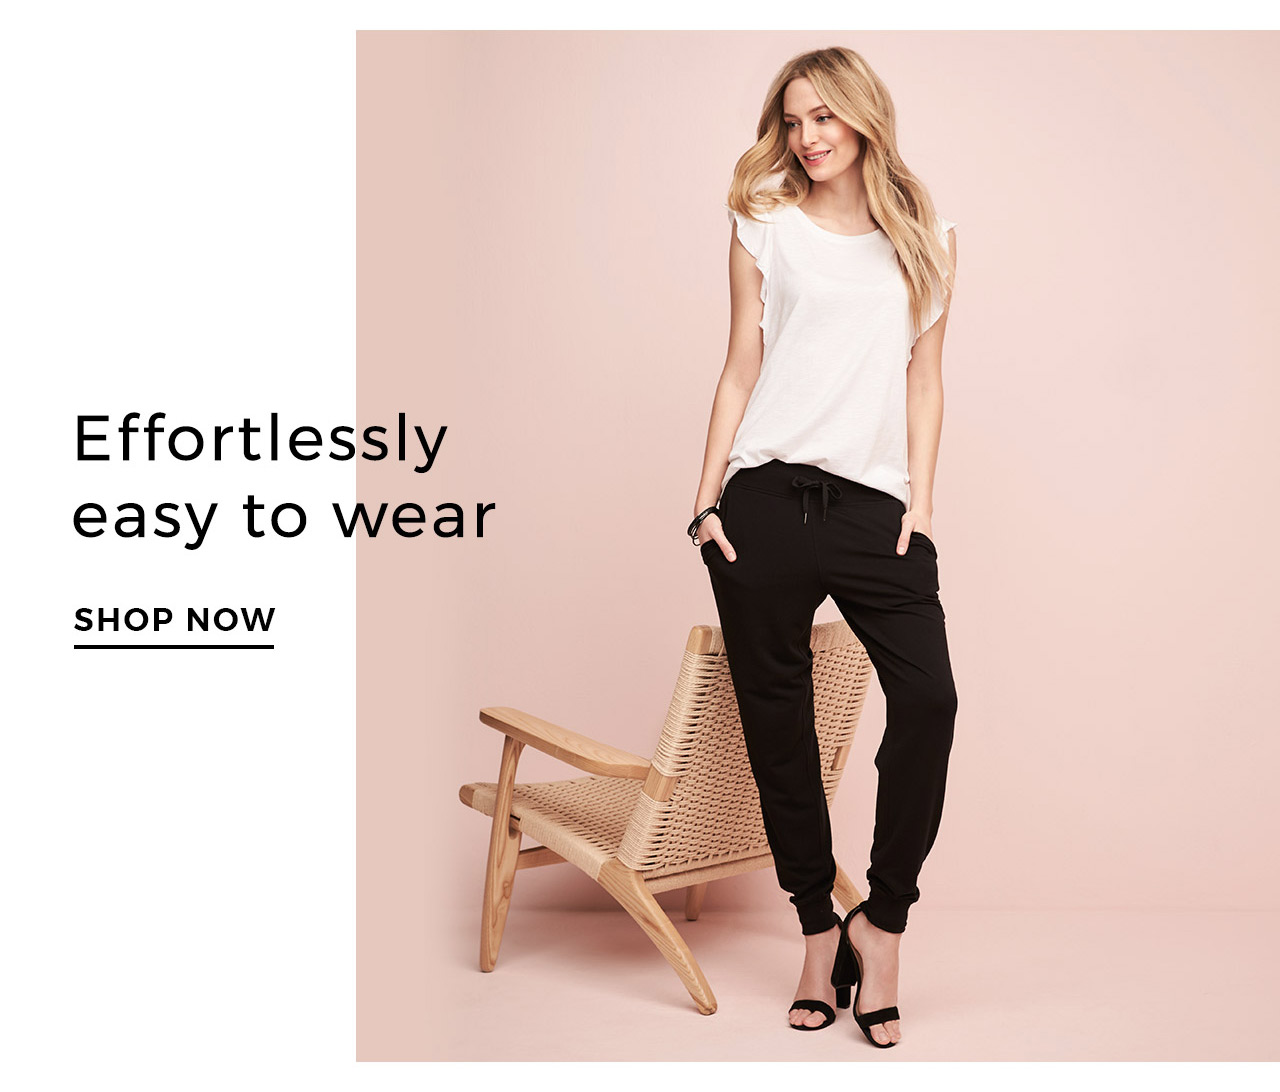 Effortlessly easy to wear